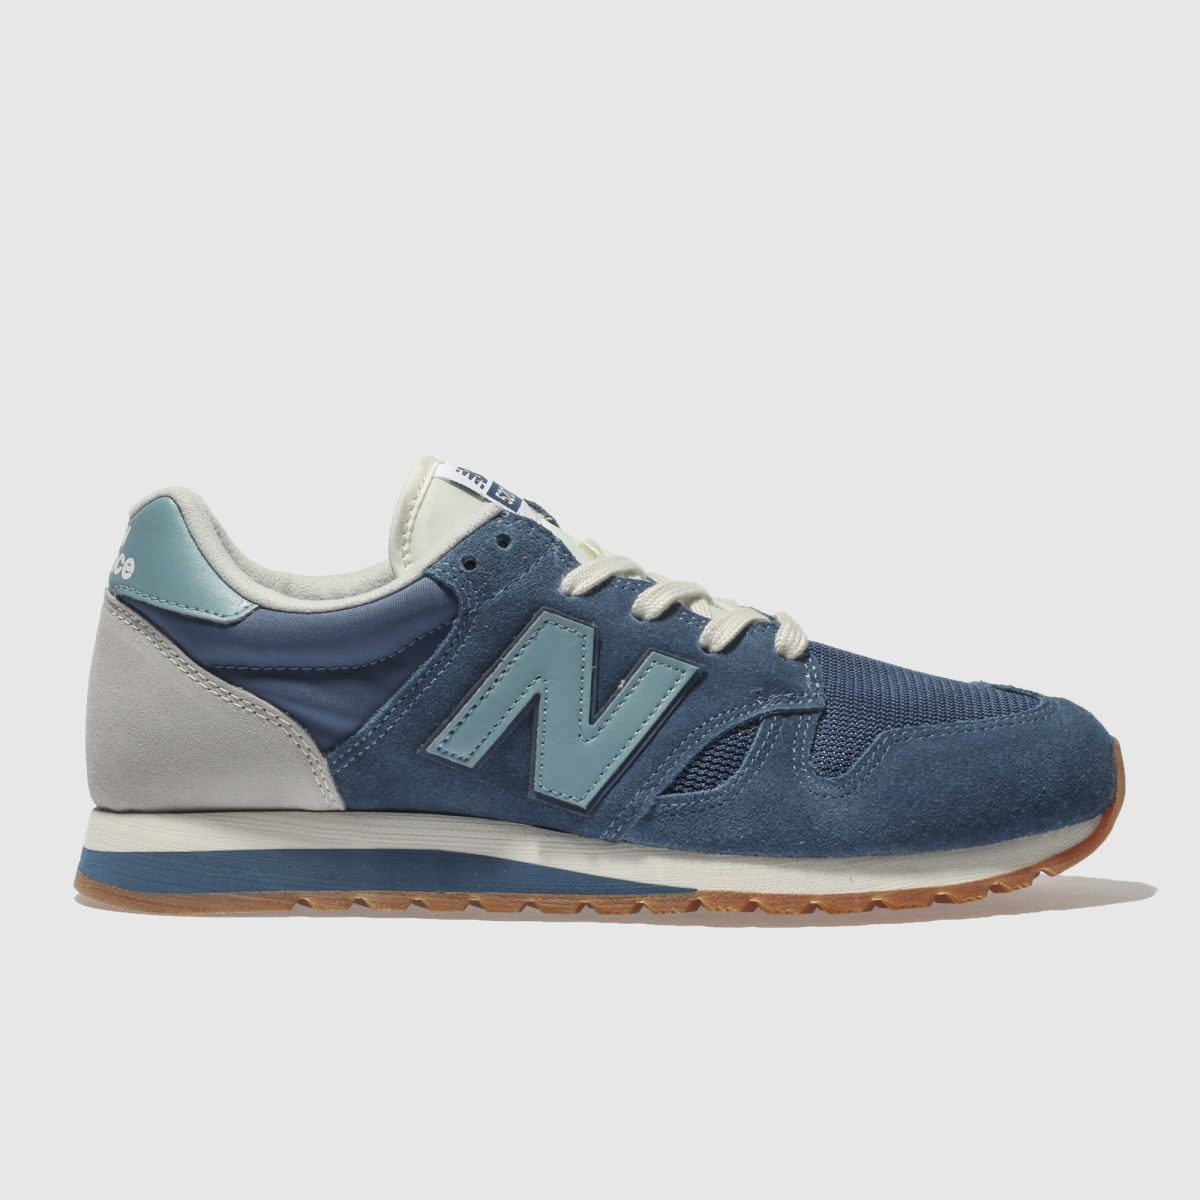 New Balance Blue 520 Trainers